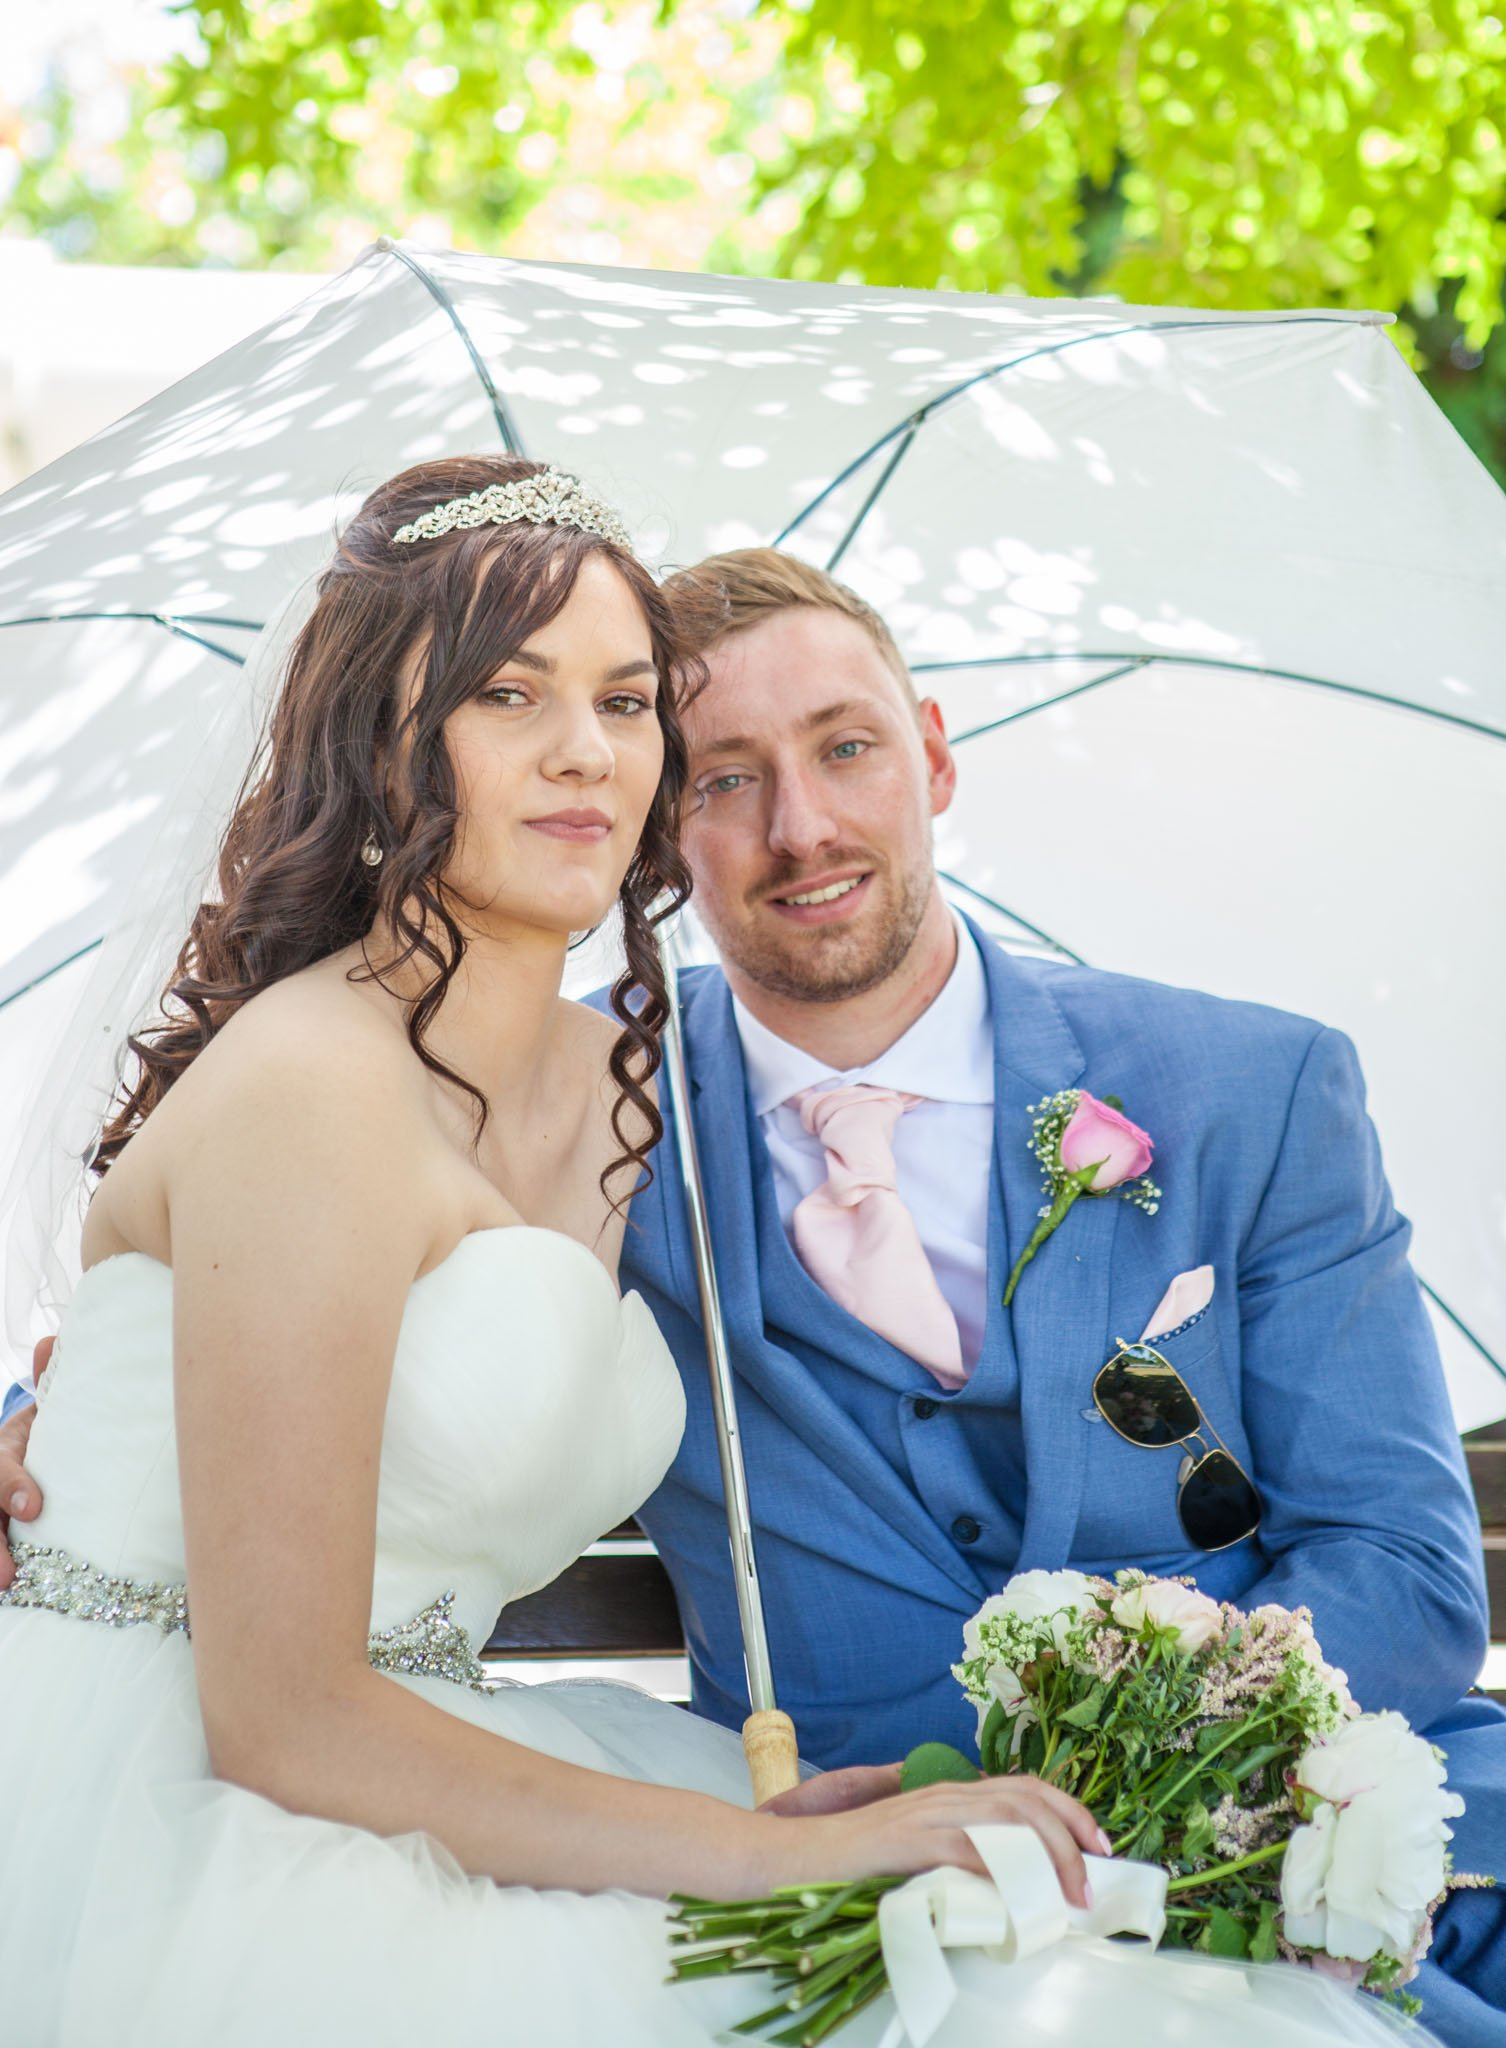 Wedding of Kalum & Kate at The Bristol Hotel, Chepstow wedding, Tania Miller Photography, Newport Wedding Photographer